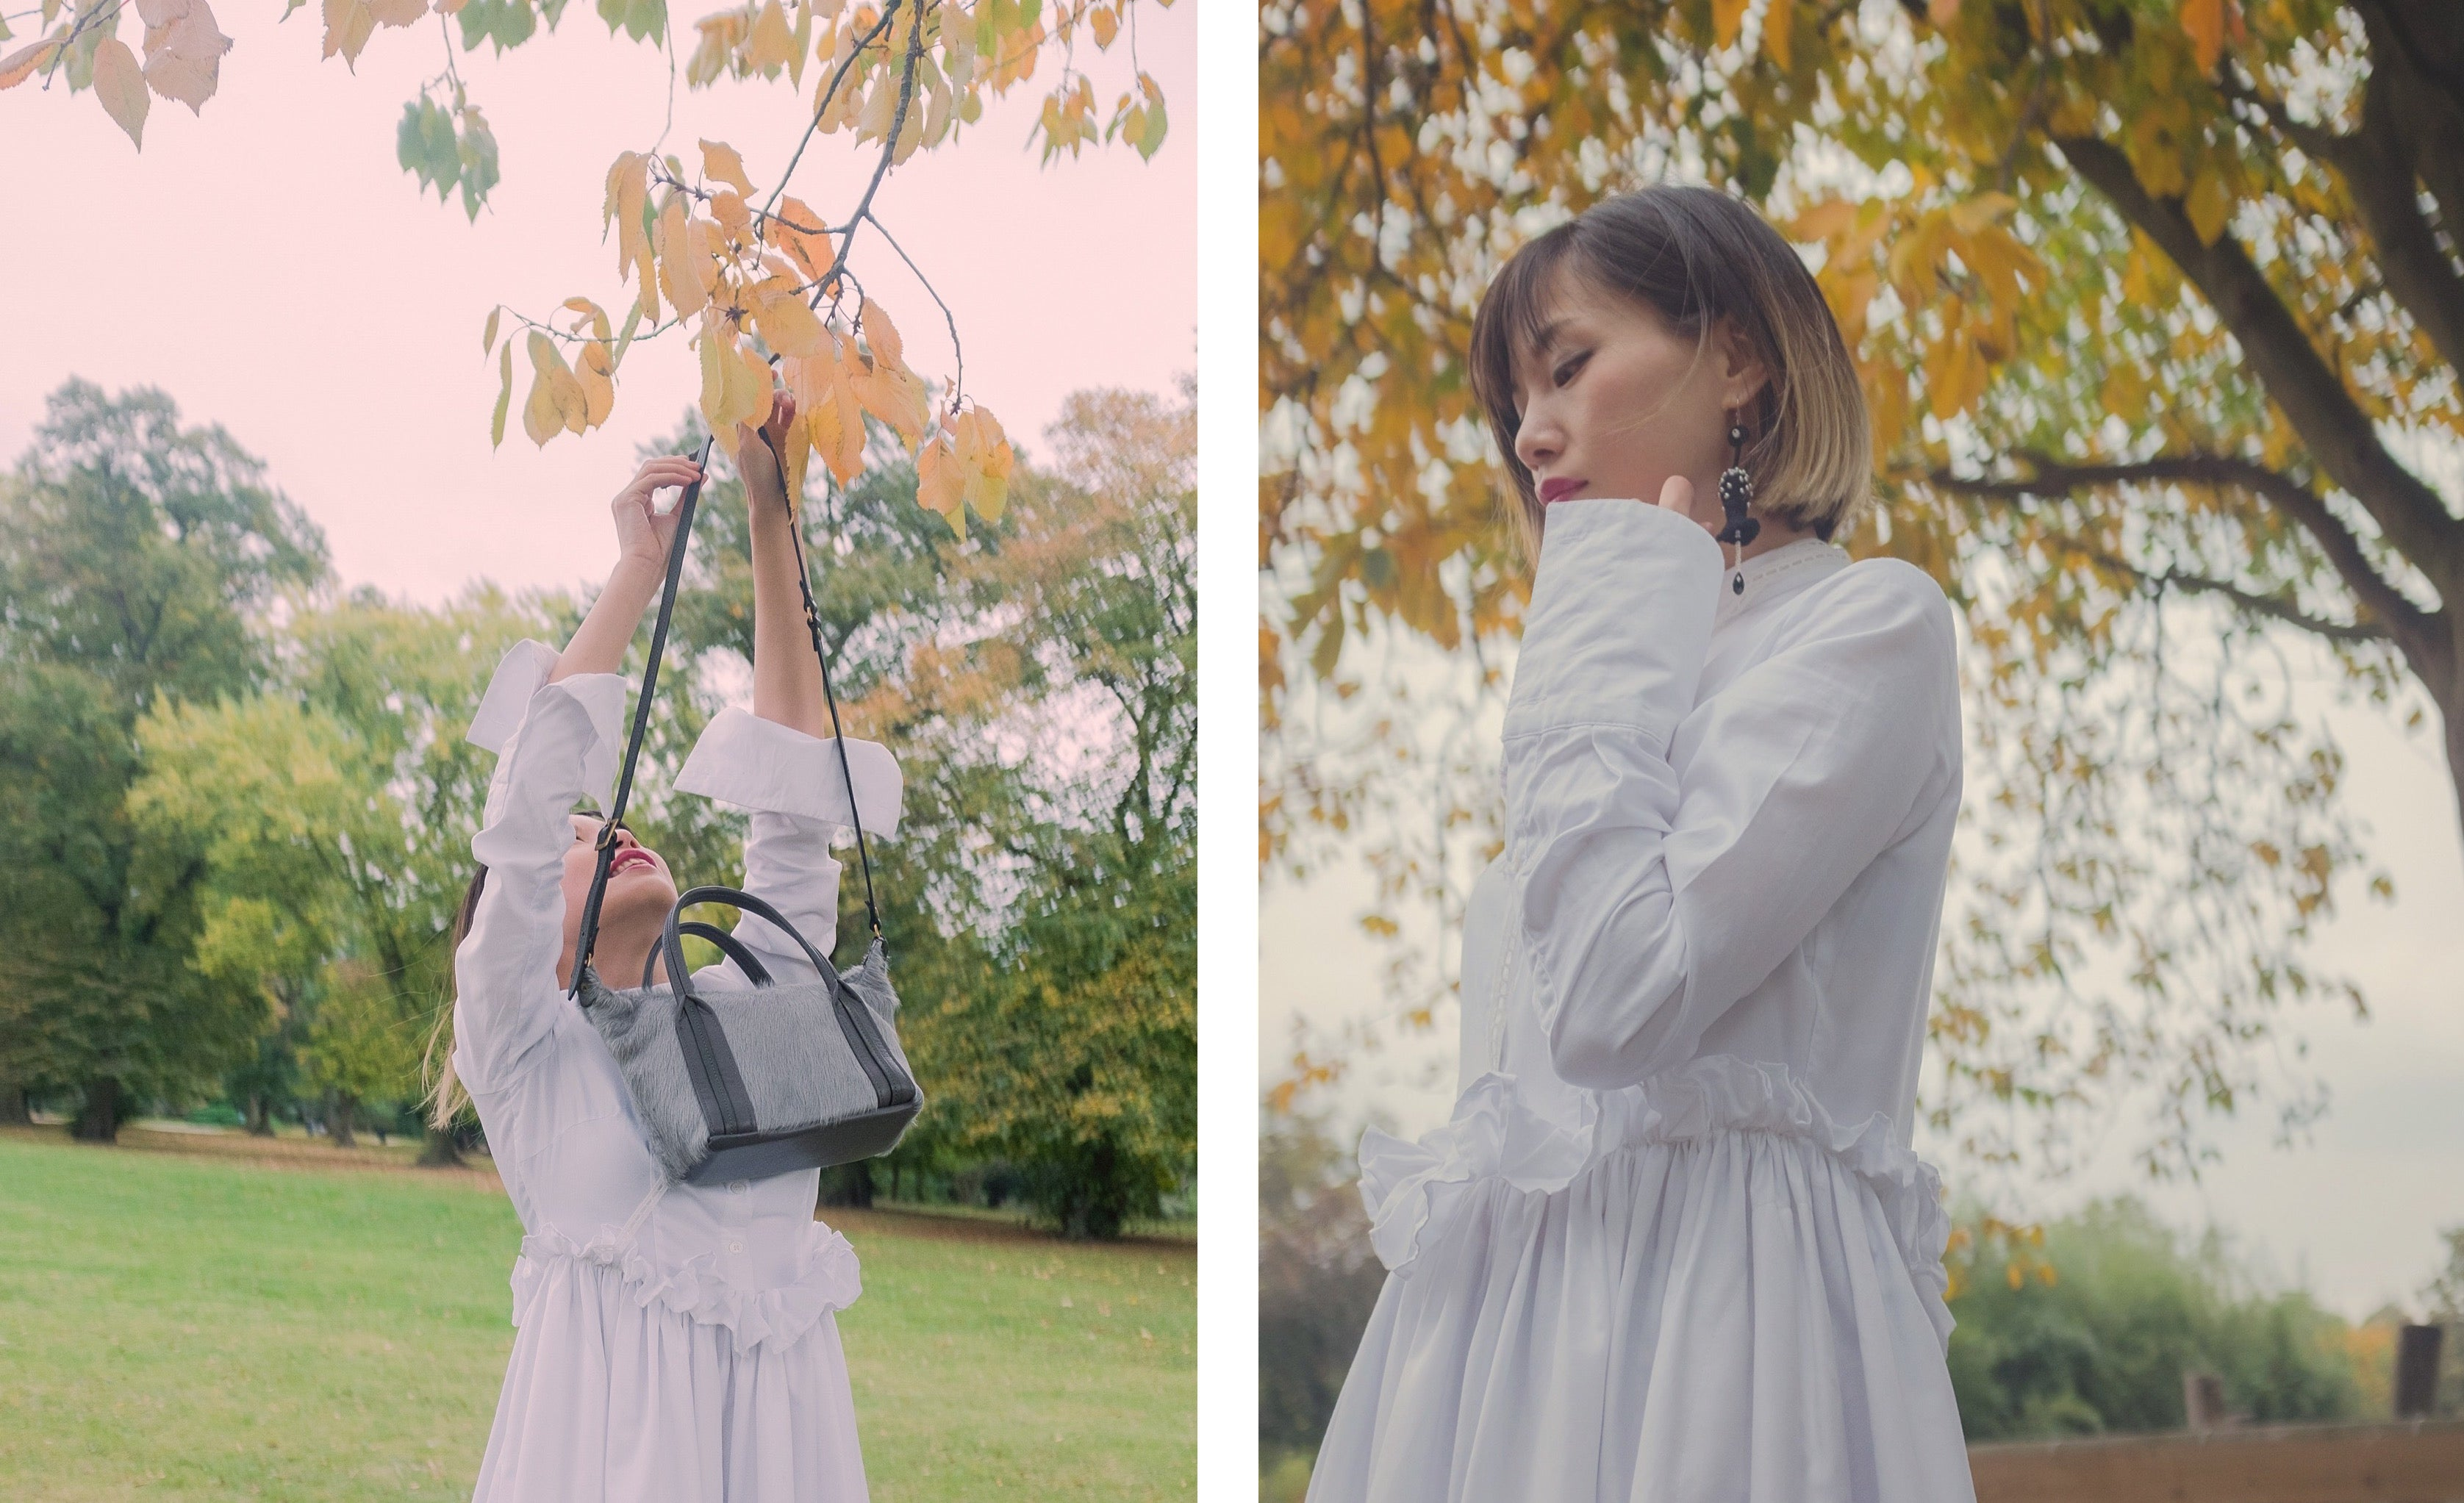 Victoria Park London featuring Jas MB London wings traveller bag and YUAN gray coat 9 | On Slowness